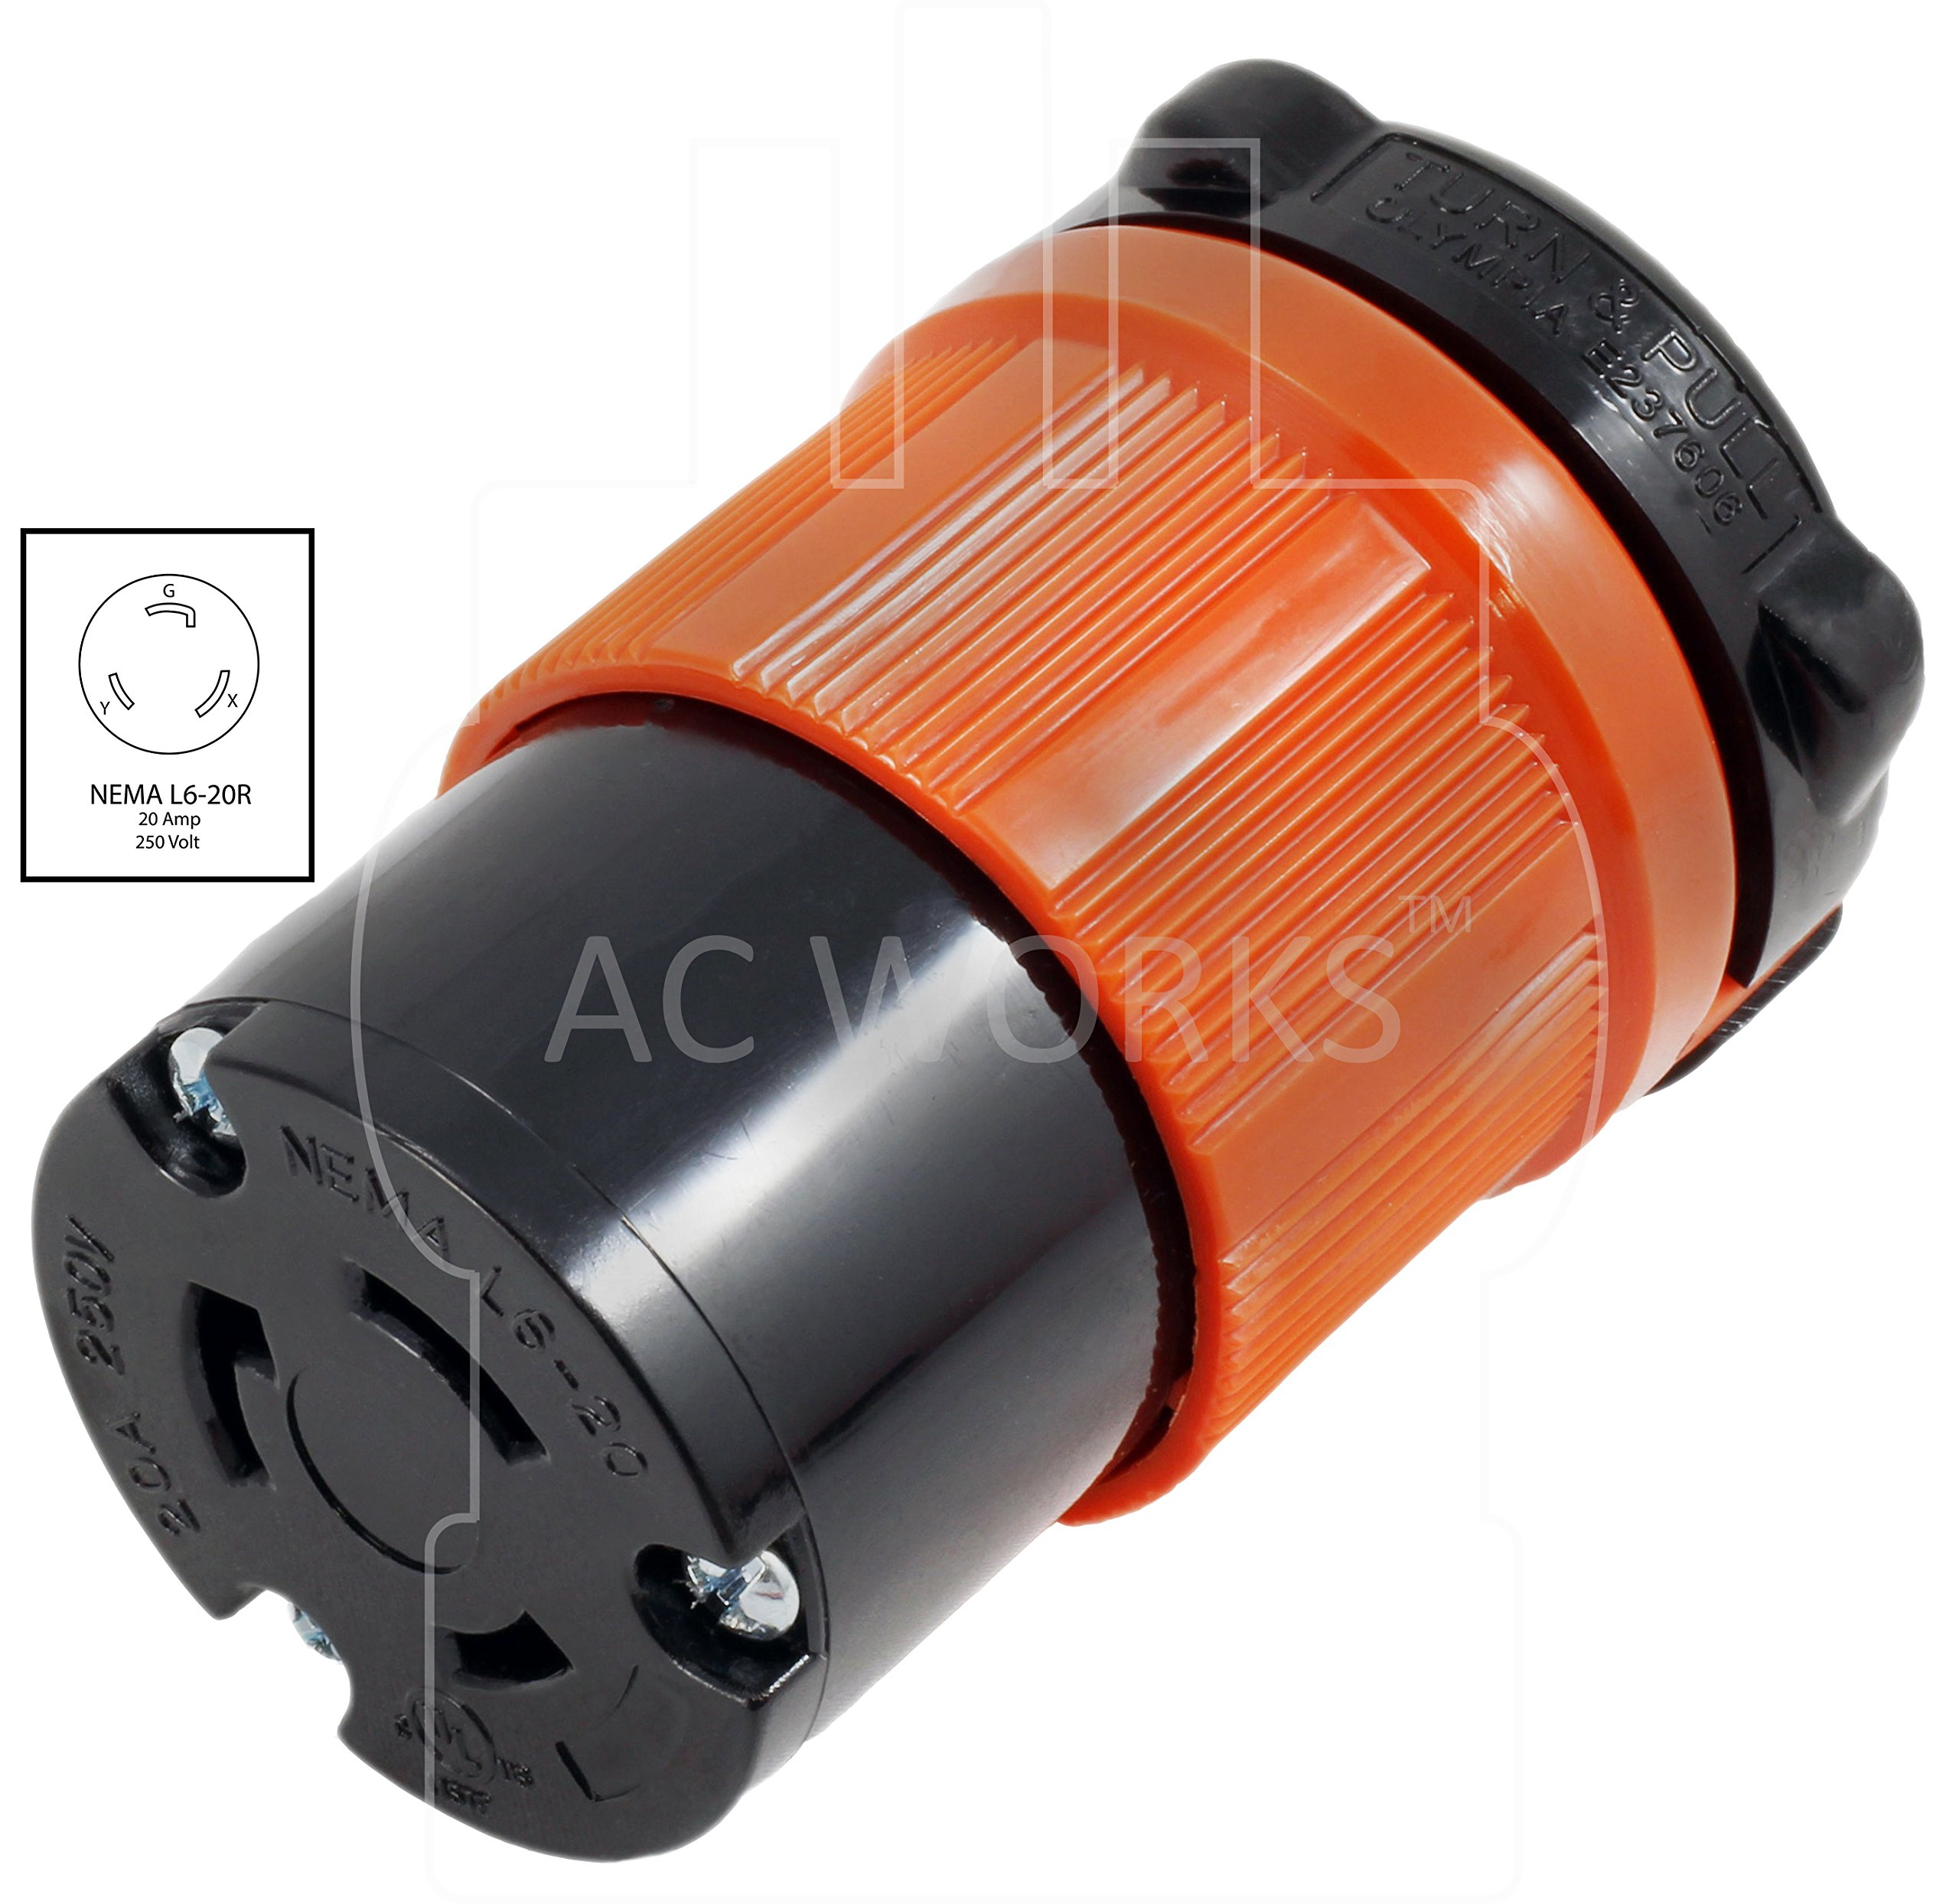 AC WORKS [ASL620R] NEMA L6-20R 20Amp 250Volt 3 Prong Locking Female Connector With UL, C-UL Approval by AC WORKS (Image #2)